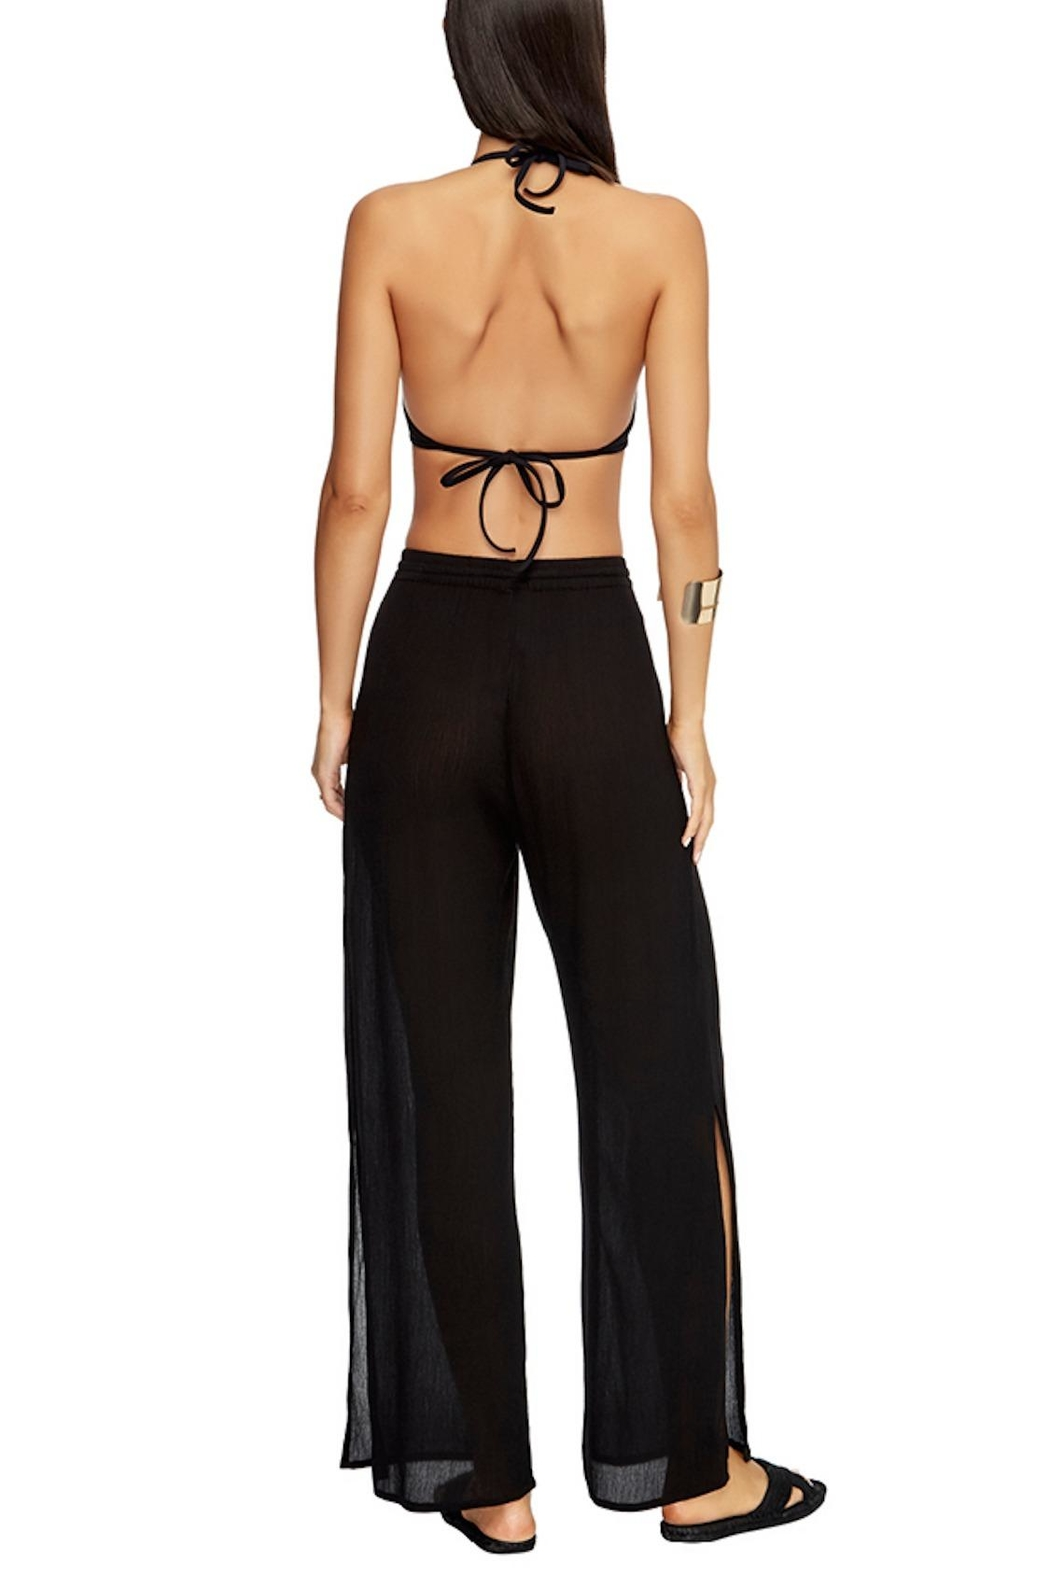 Jets by Jessika Allen J Jetset Black Pants - Back Cropped Image